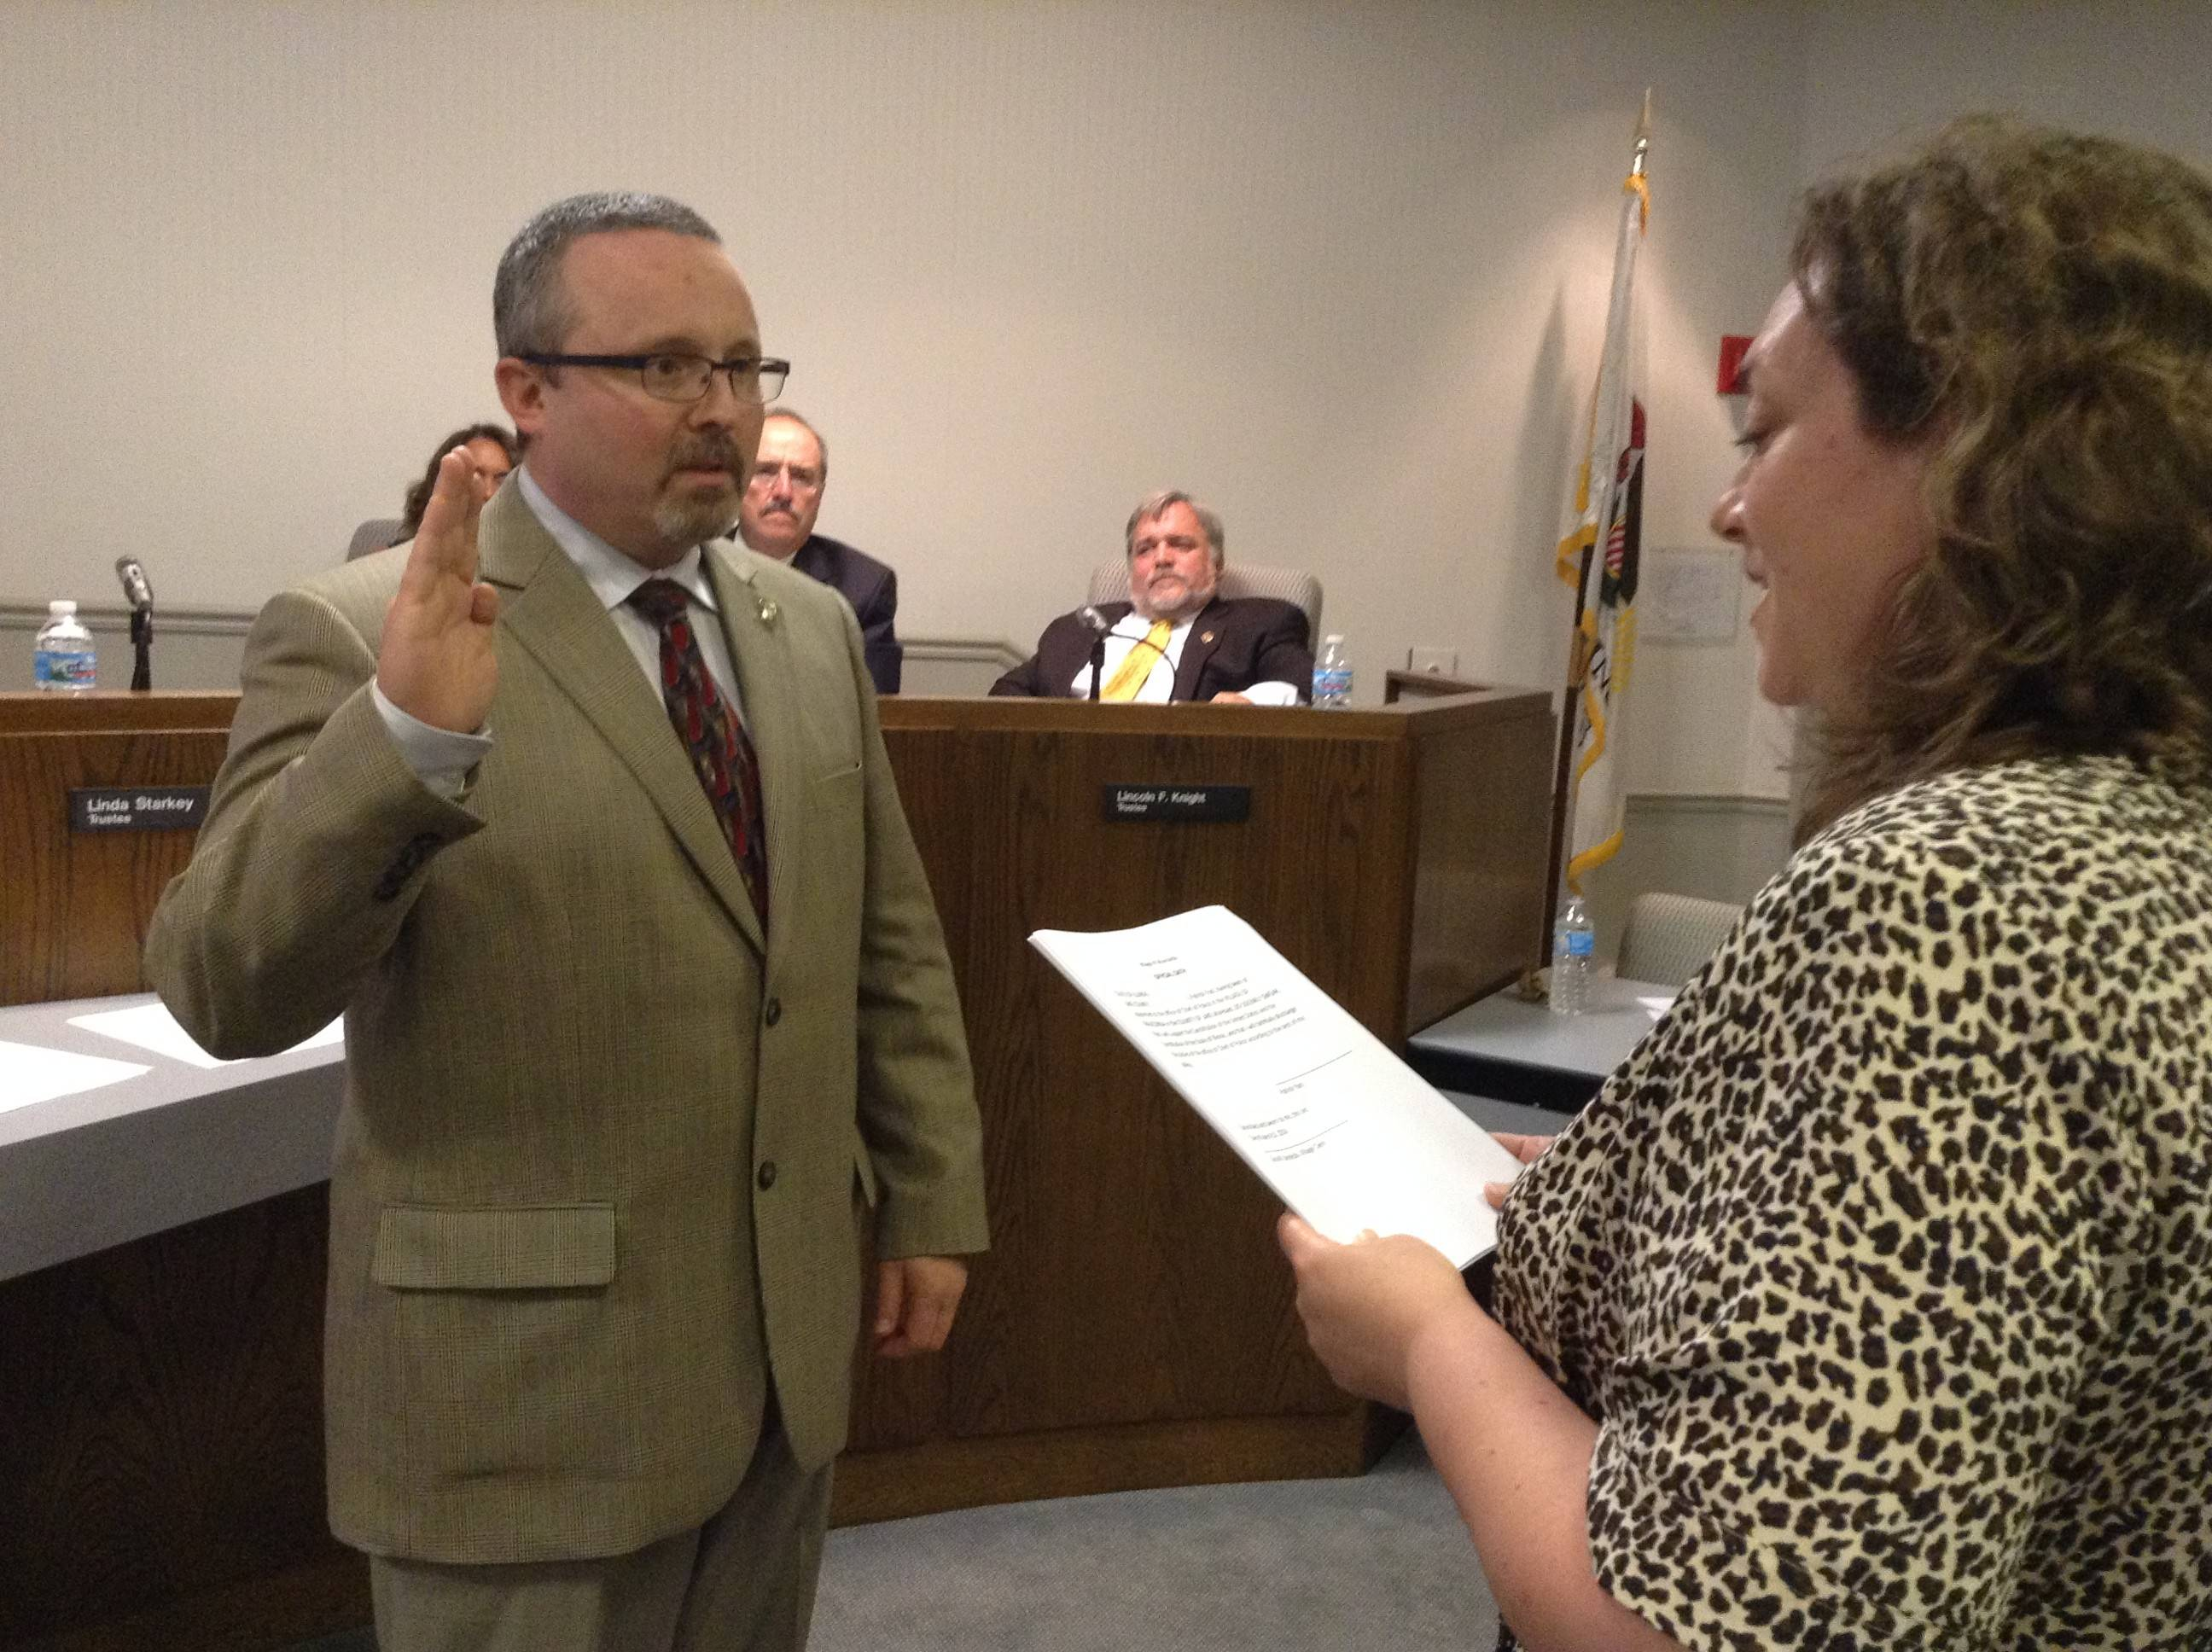 Wauconda Police Chief Patrick Yost recites the oath of office Tuesday evening with help from Clerk Gina Strelecki.